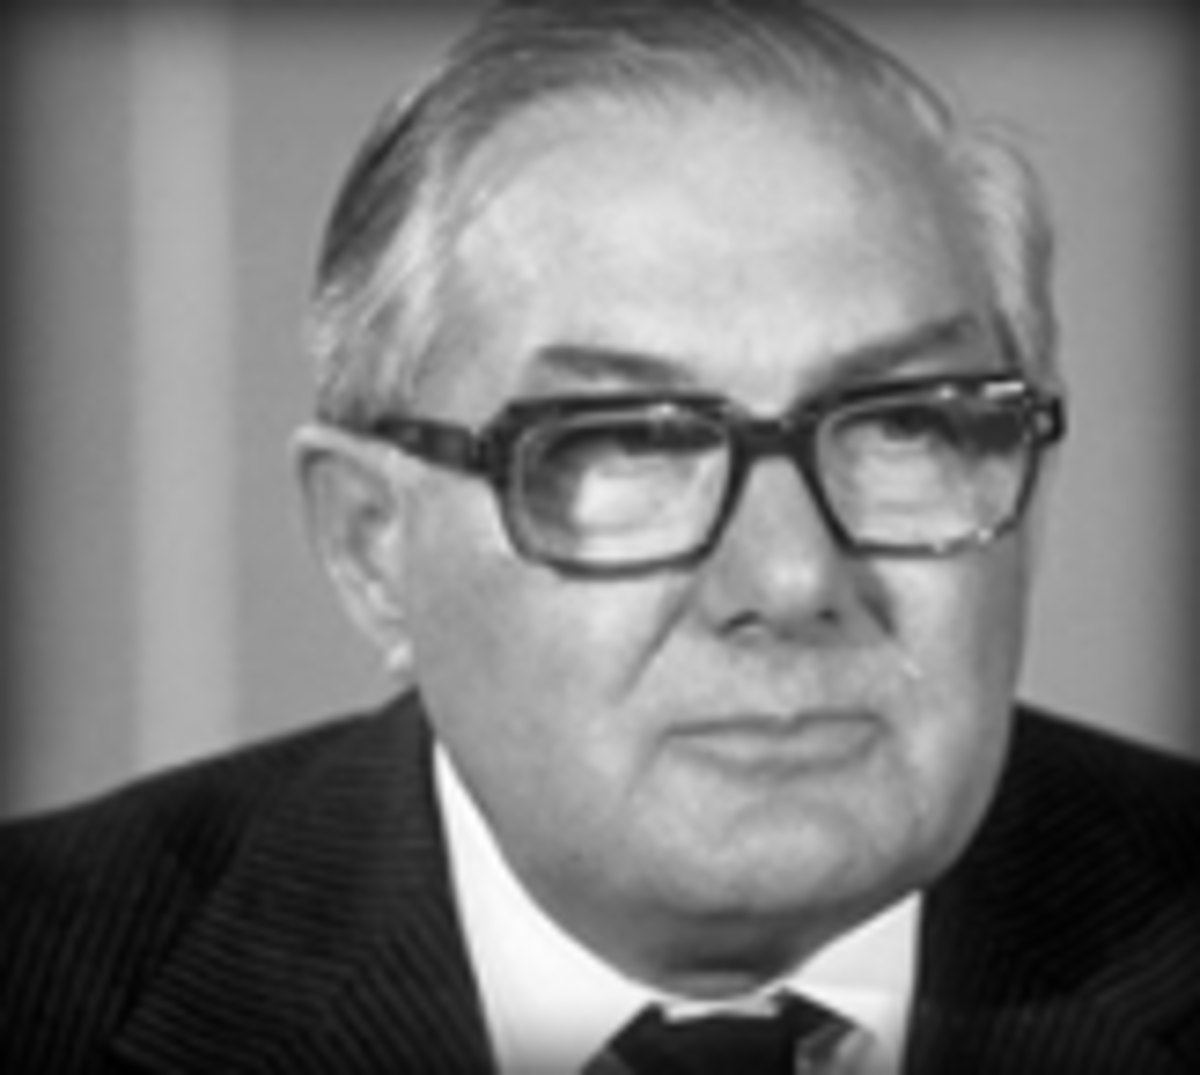 James Callaghan Prime Minister at time of massive strikes in 1979